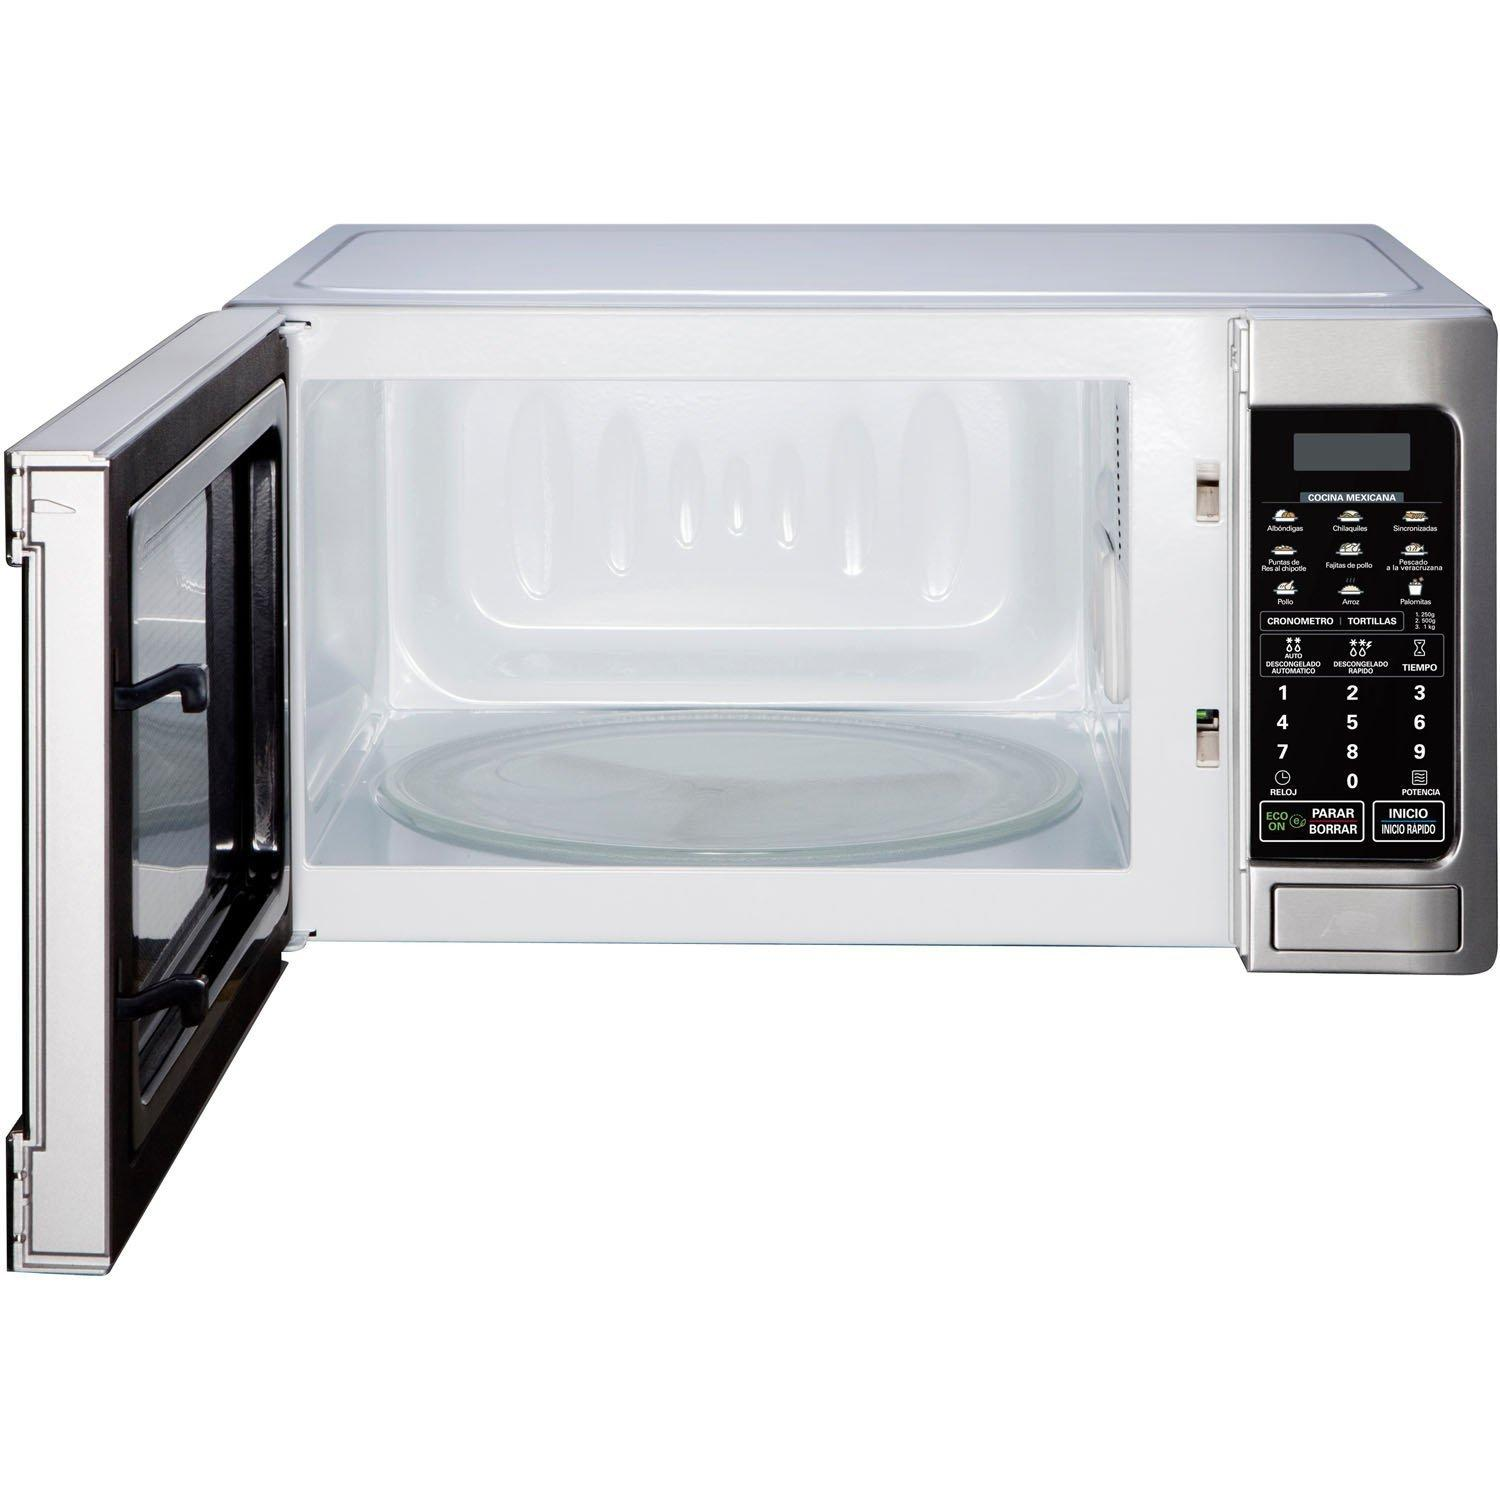 Lg Countertop Microwave With Trim Kit : LCS1112ST Lg lcs1112st Countertop Microwaves Stainless Steel